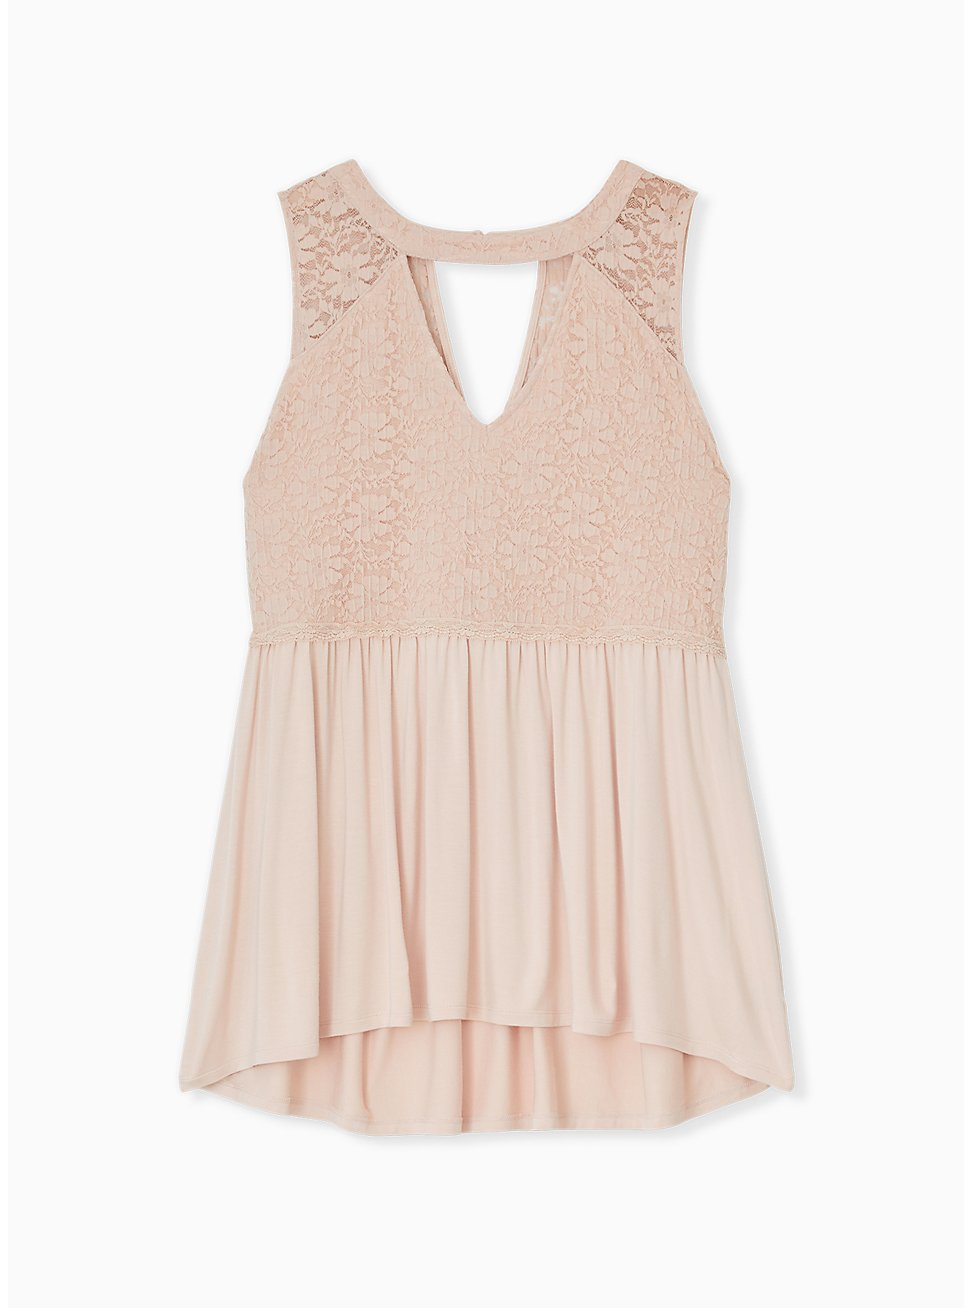 Super Soft & Lace Pale Pink Babydoll Choker Tank, , hi-res